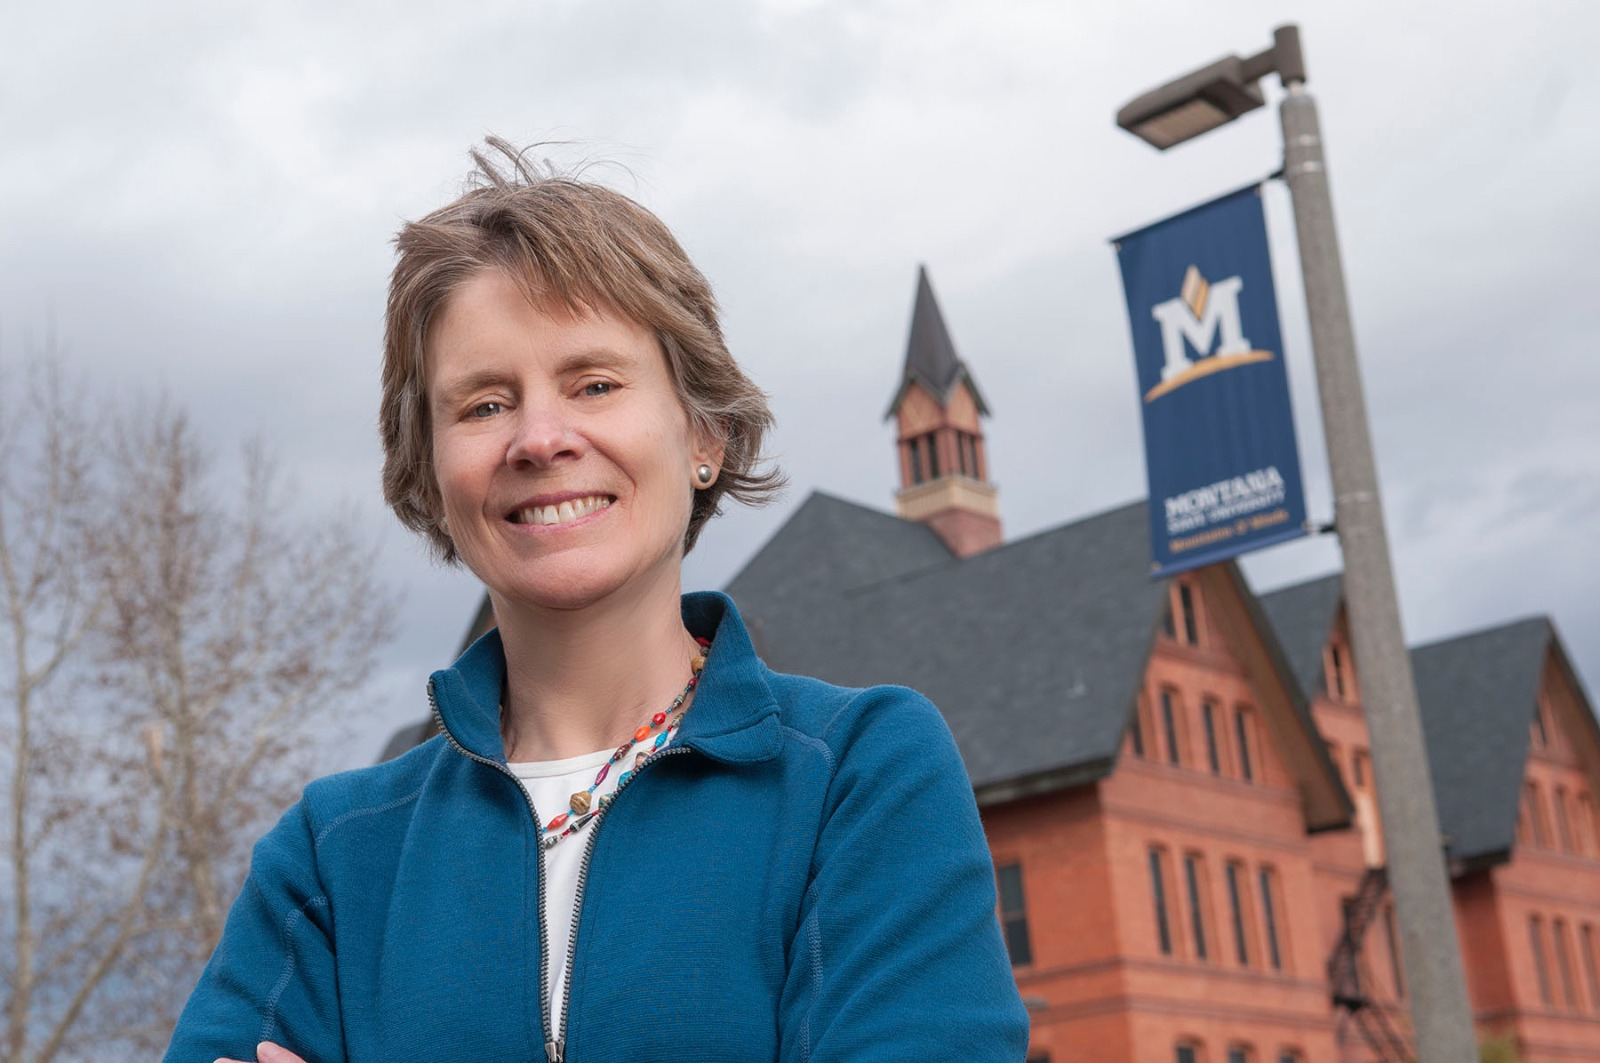 Dr. Cathy Whitlock, professor of Earth Sciences and research fellow at Montana Institute on Ecosystems. Whitlock, also involved with the relationship between wildfire and climate, was a lead author of the recent Montana Climate Assessment.